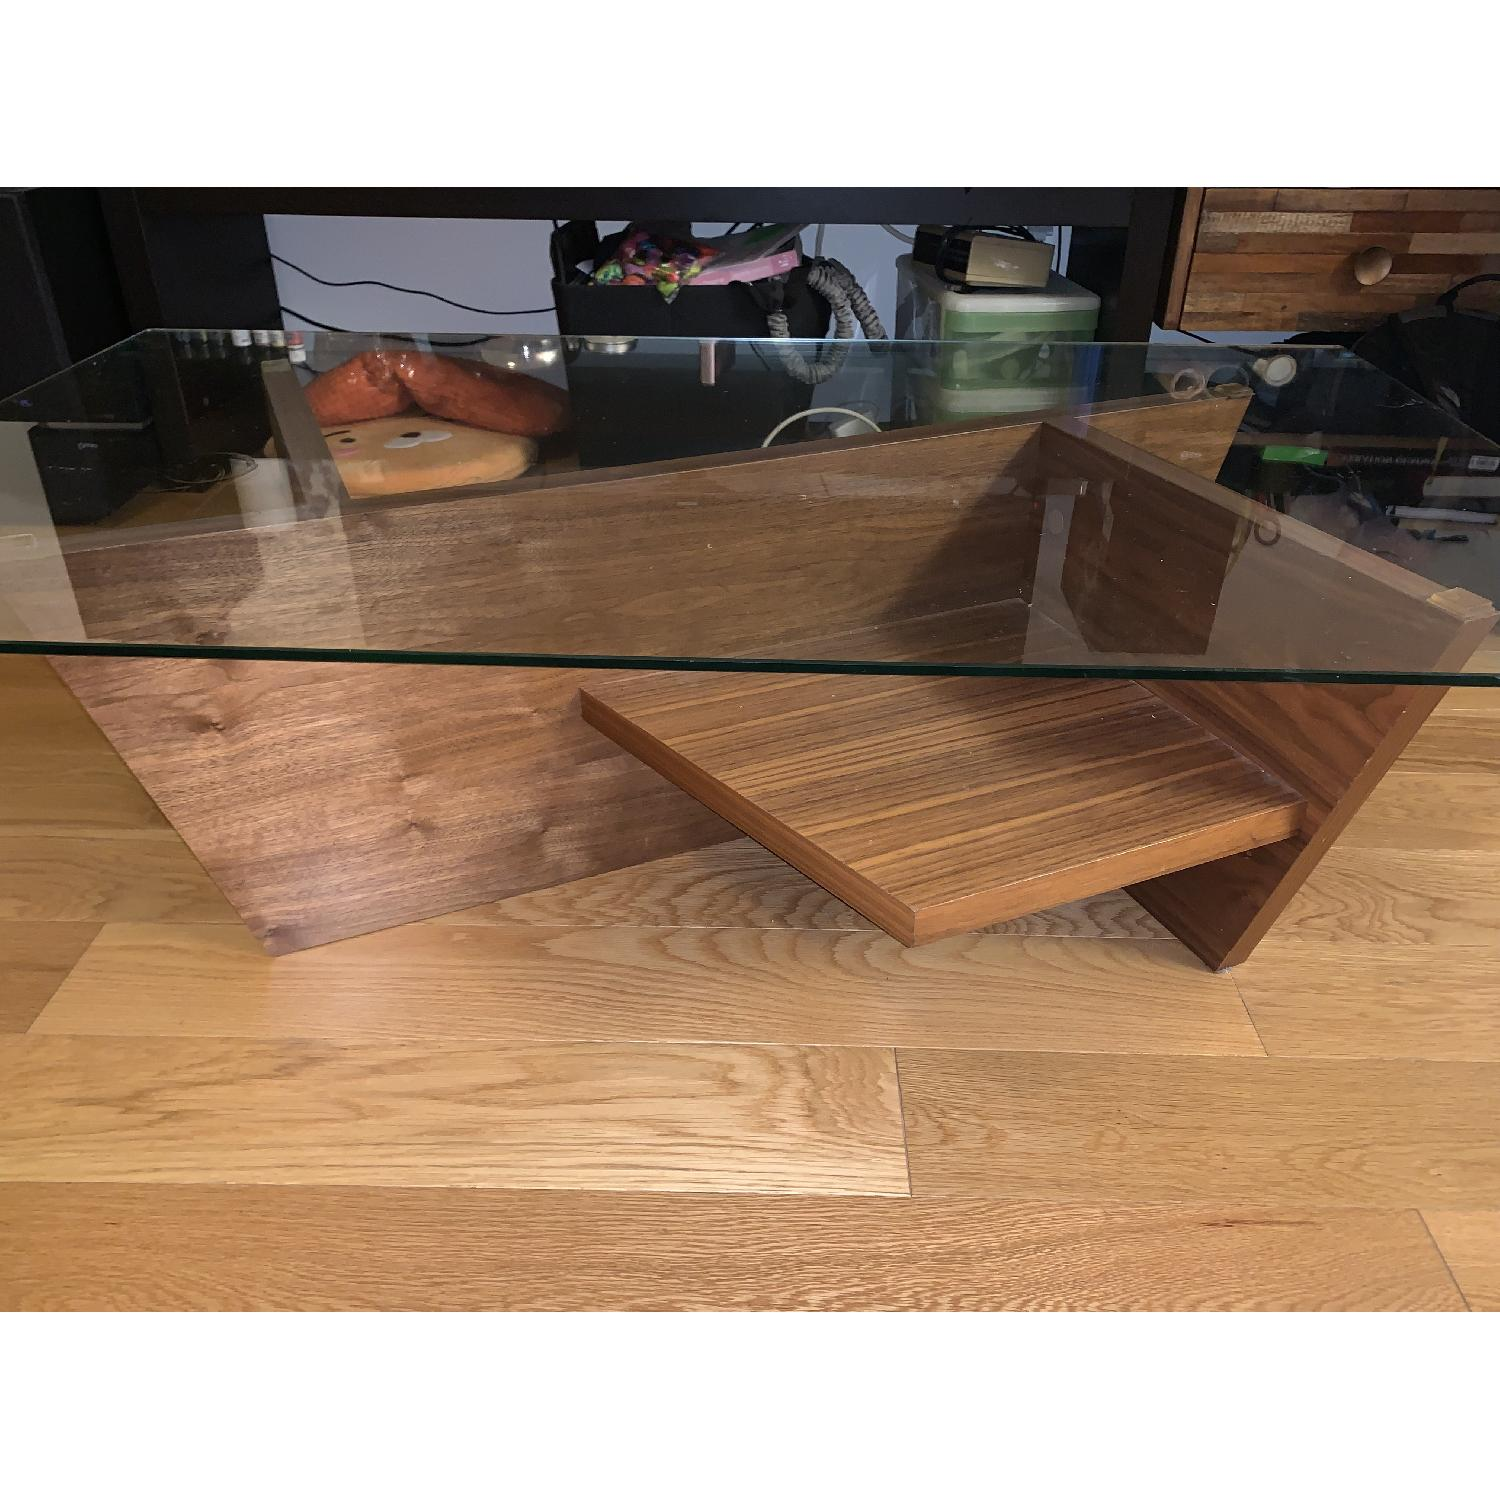 ABC Carpet & Home Oliva Glass Top/Walnut Base Coffee Table-1